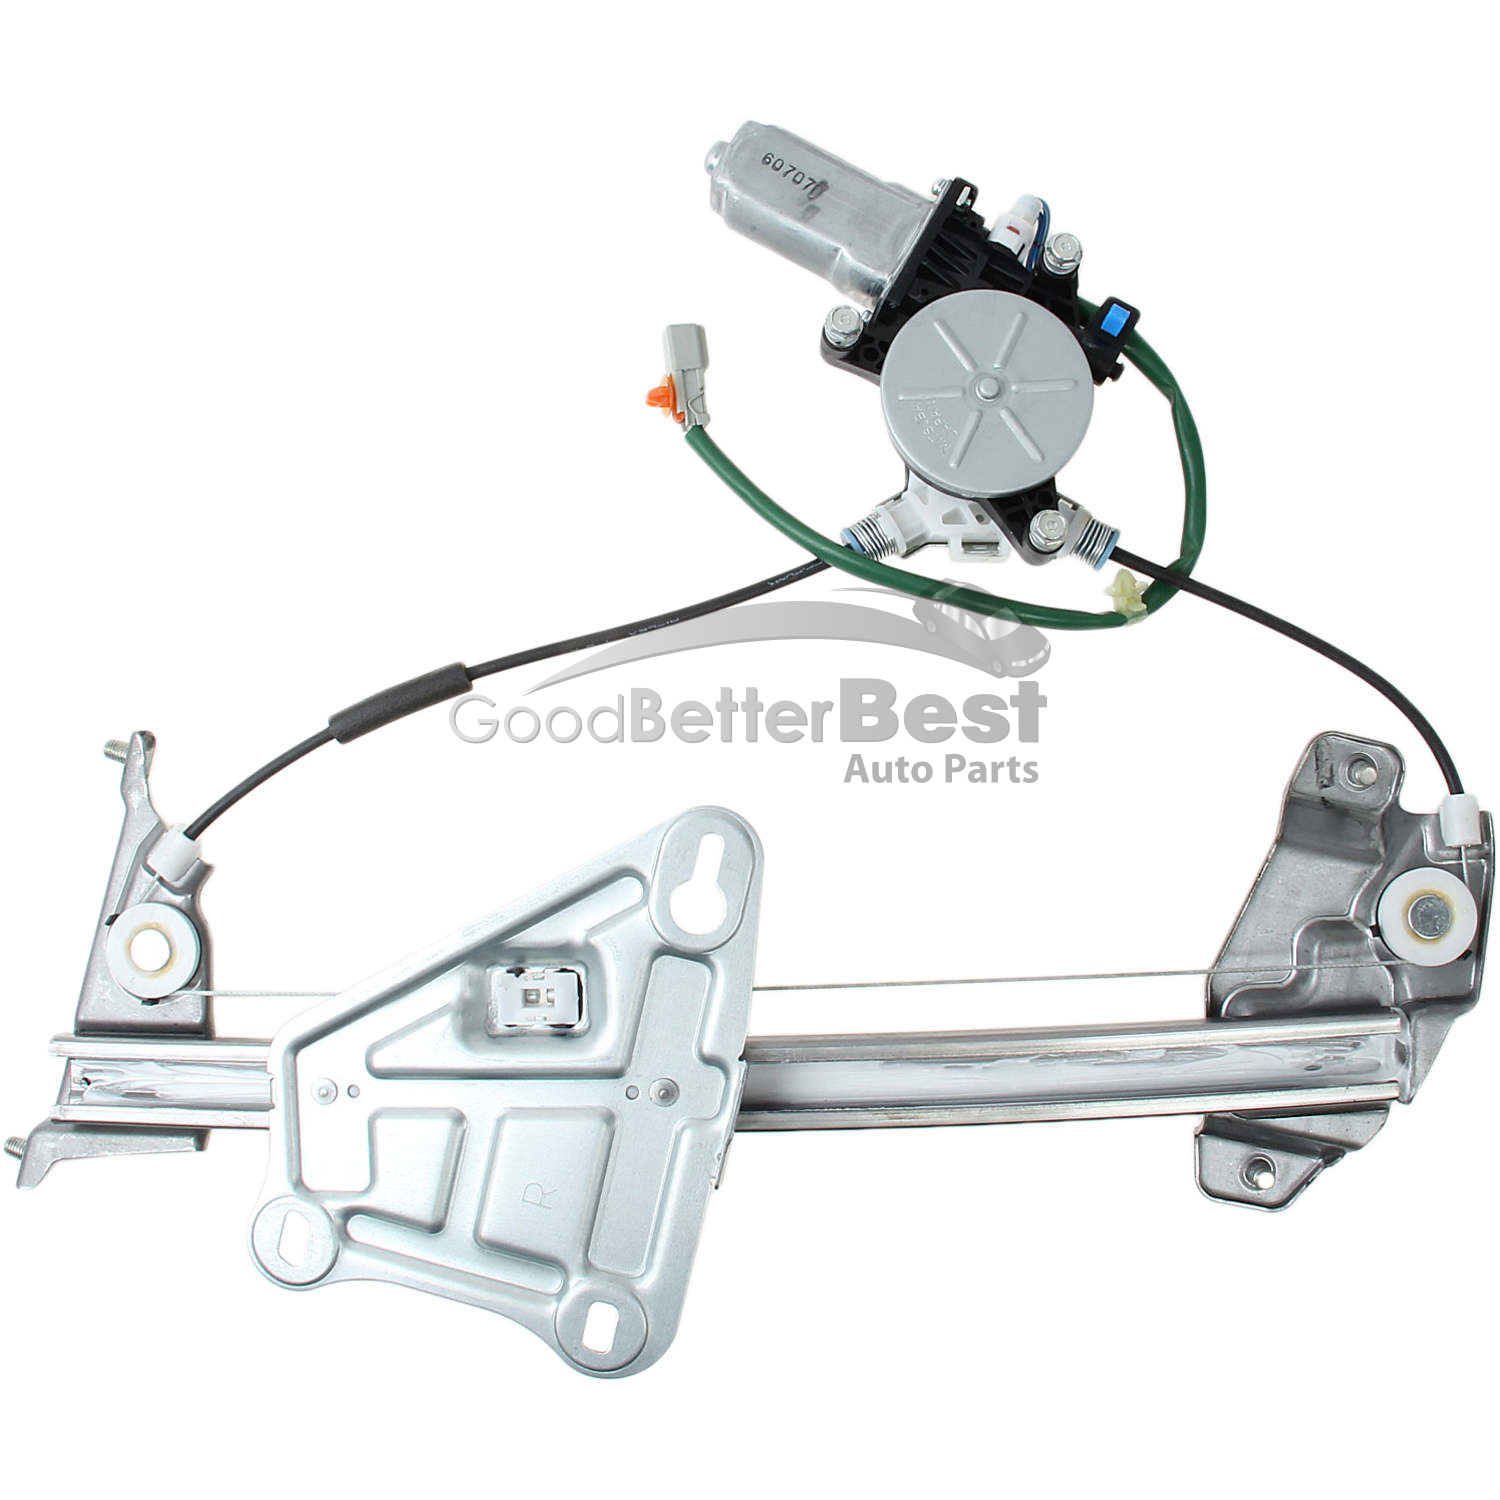 Power Window Motor and Regulator Assembly Front Right fits 2003 Honda Pilot